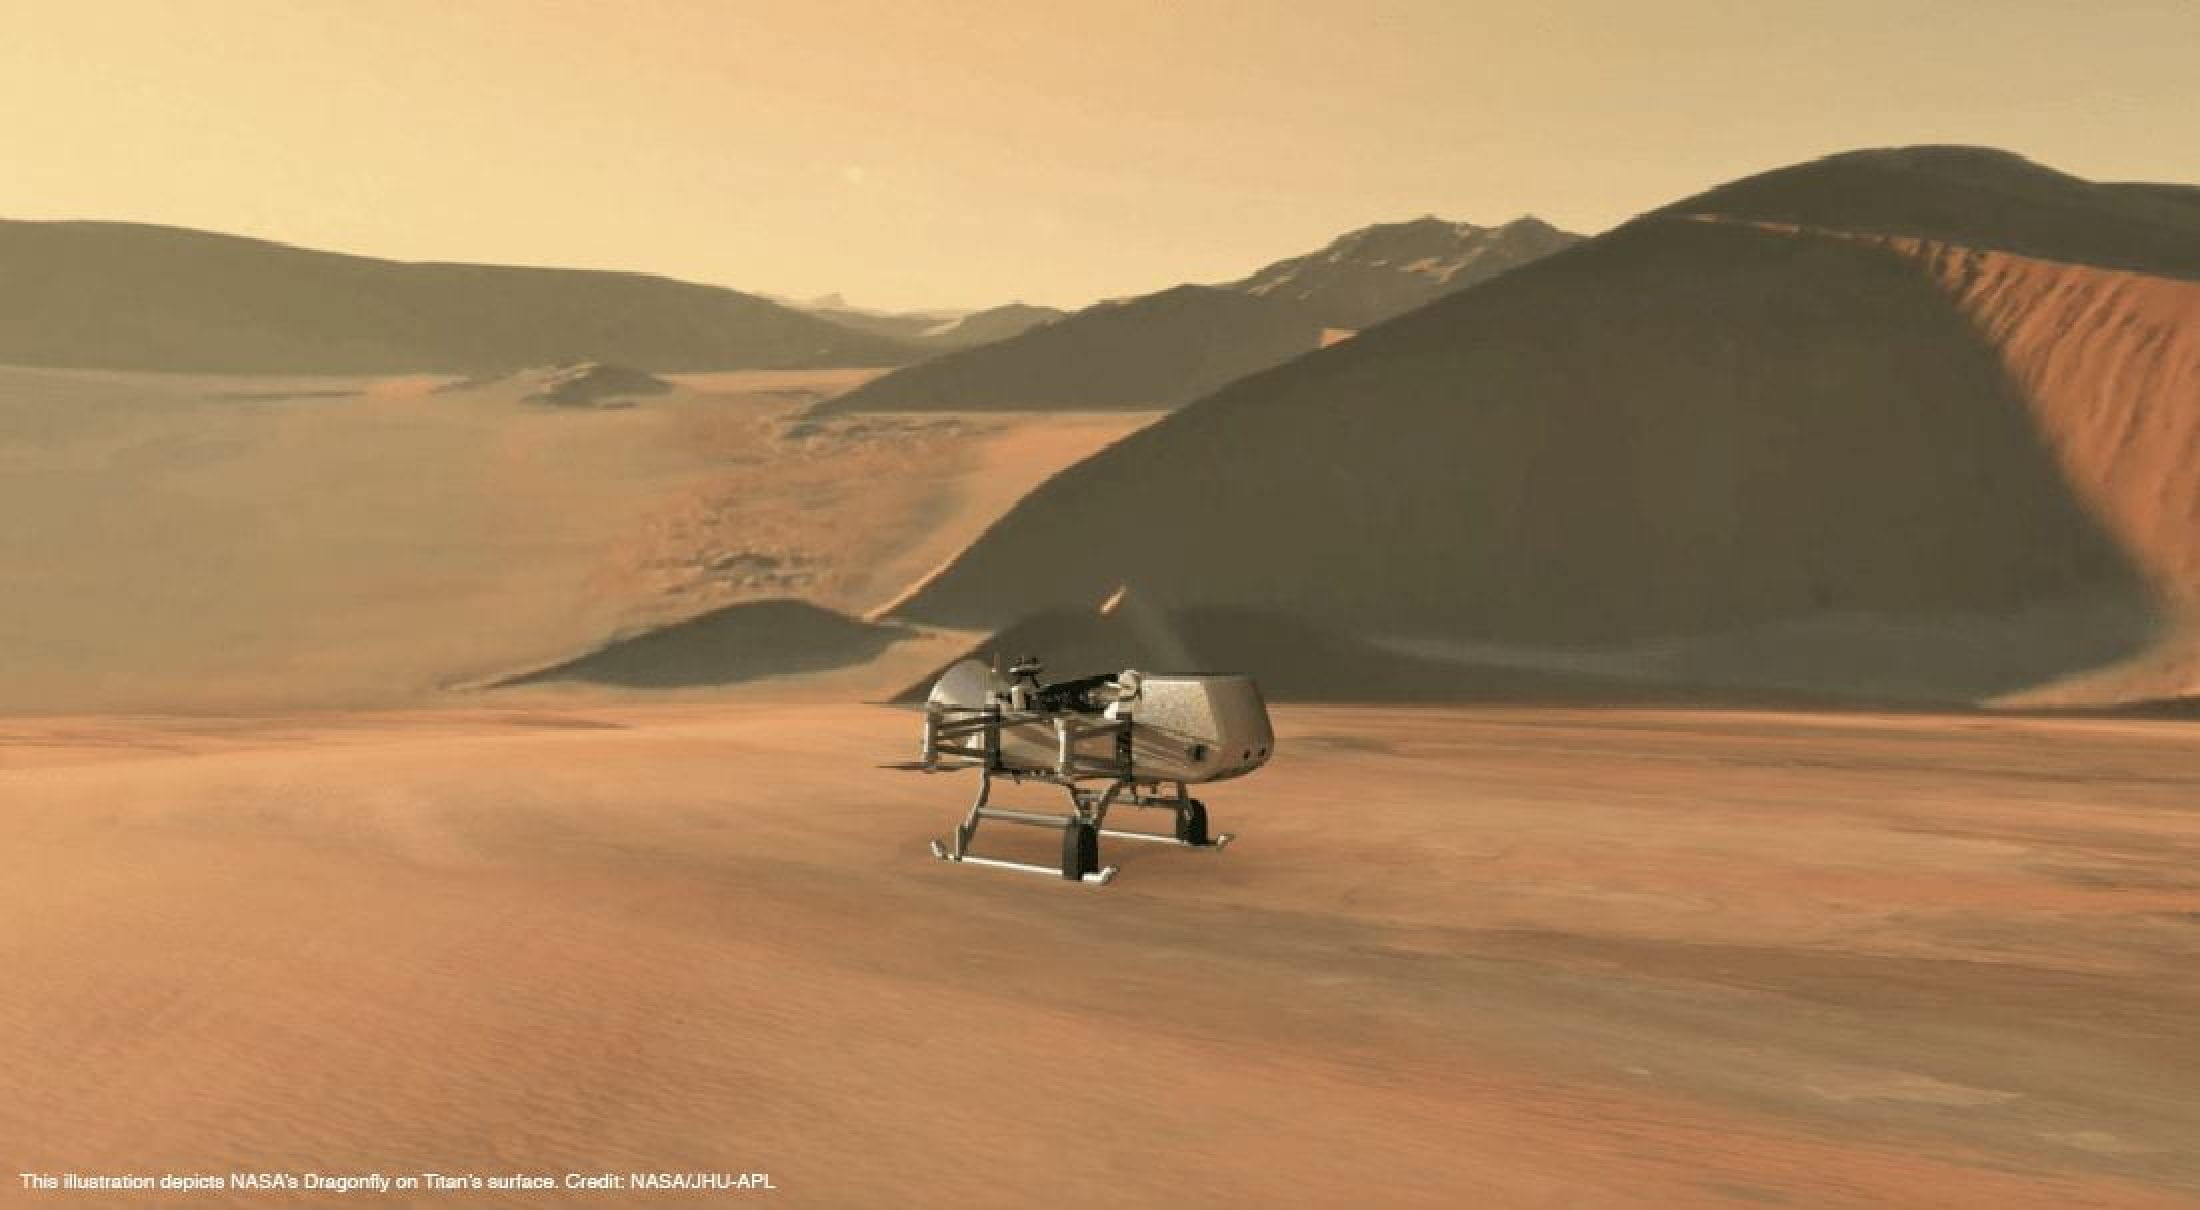 This illustration depicts NASA's Dragonfly on Titan's surface. Credit: NASA-JHU-APL